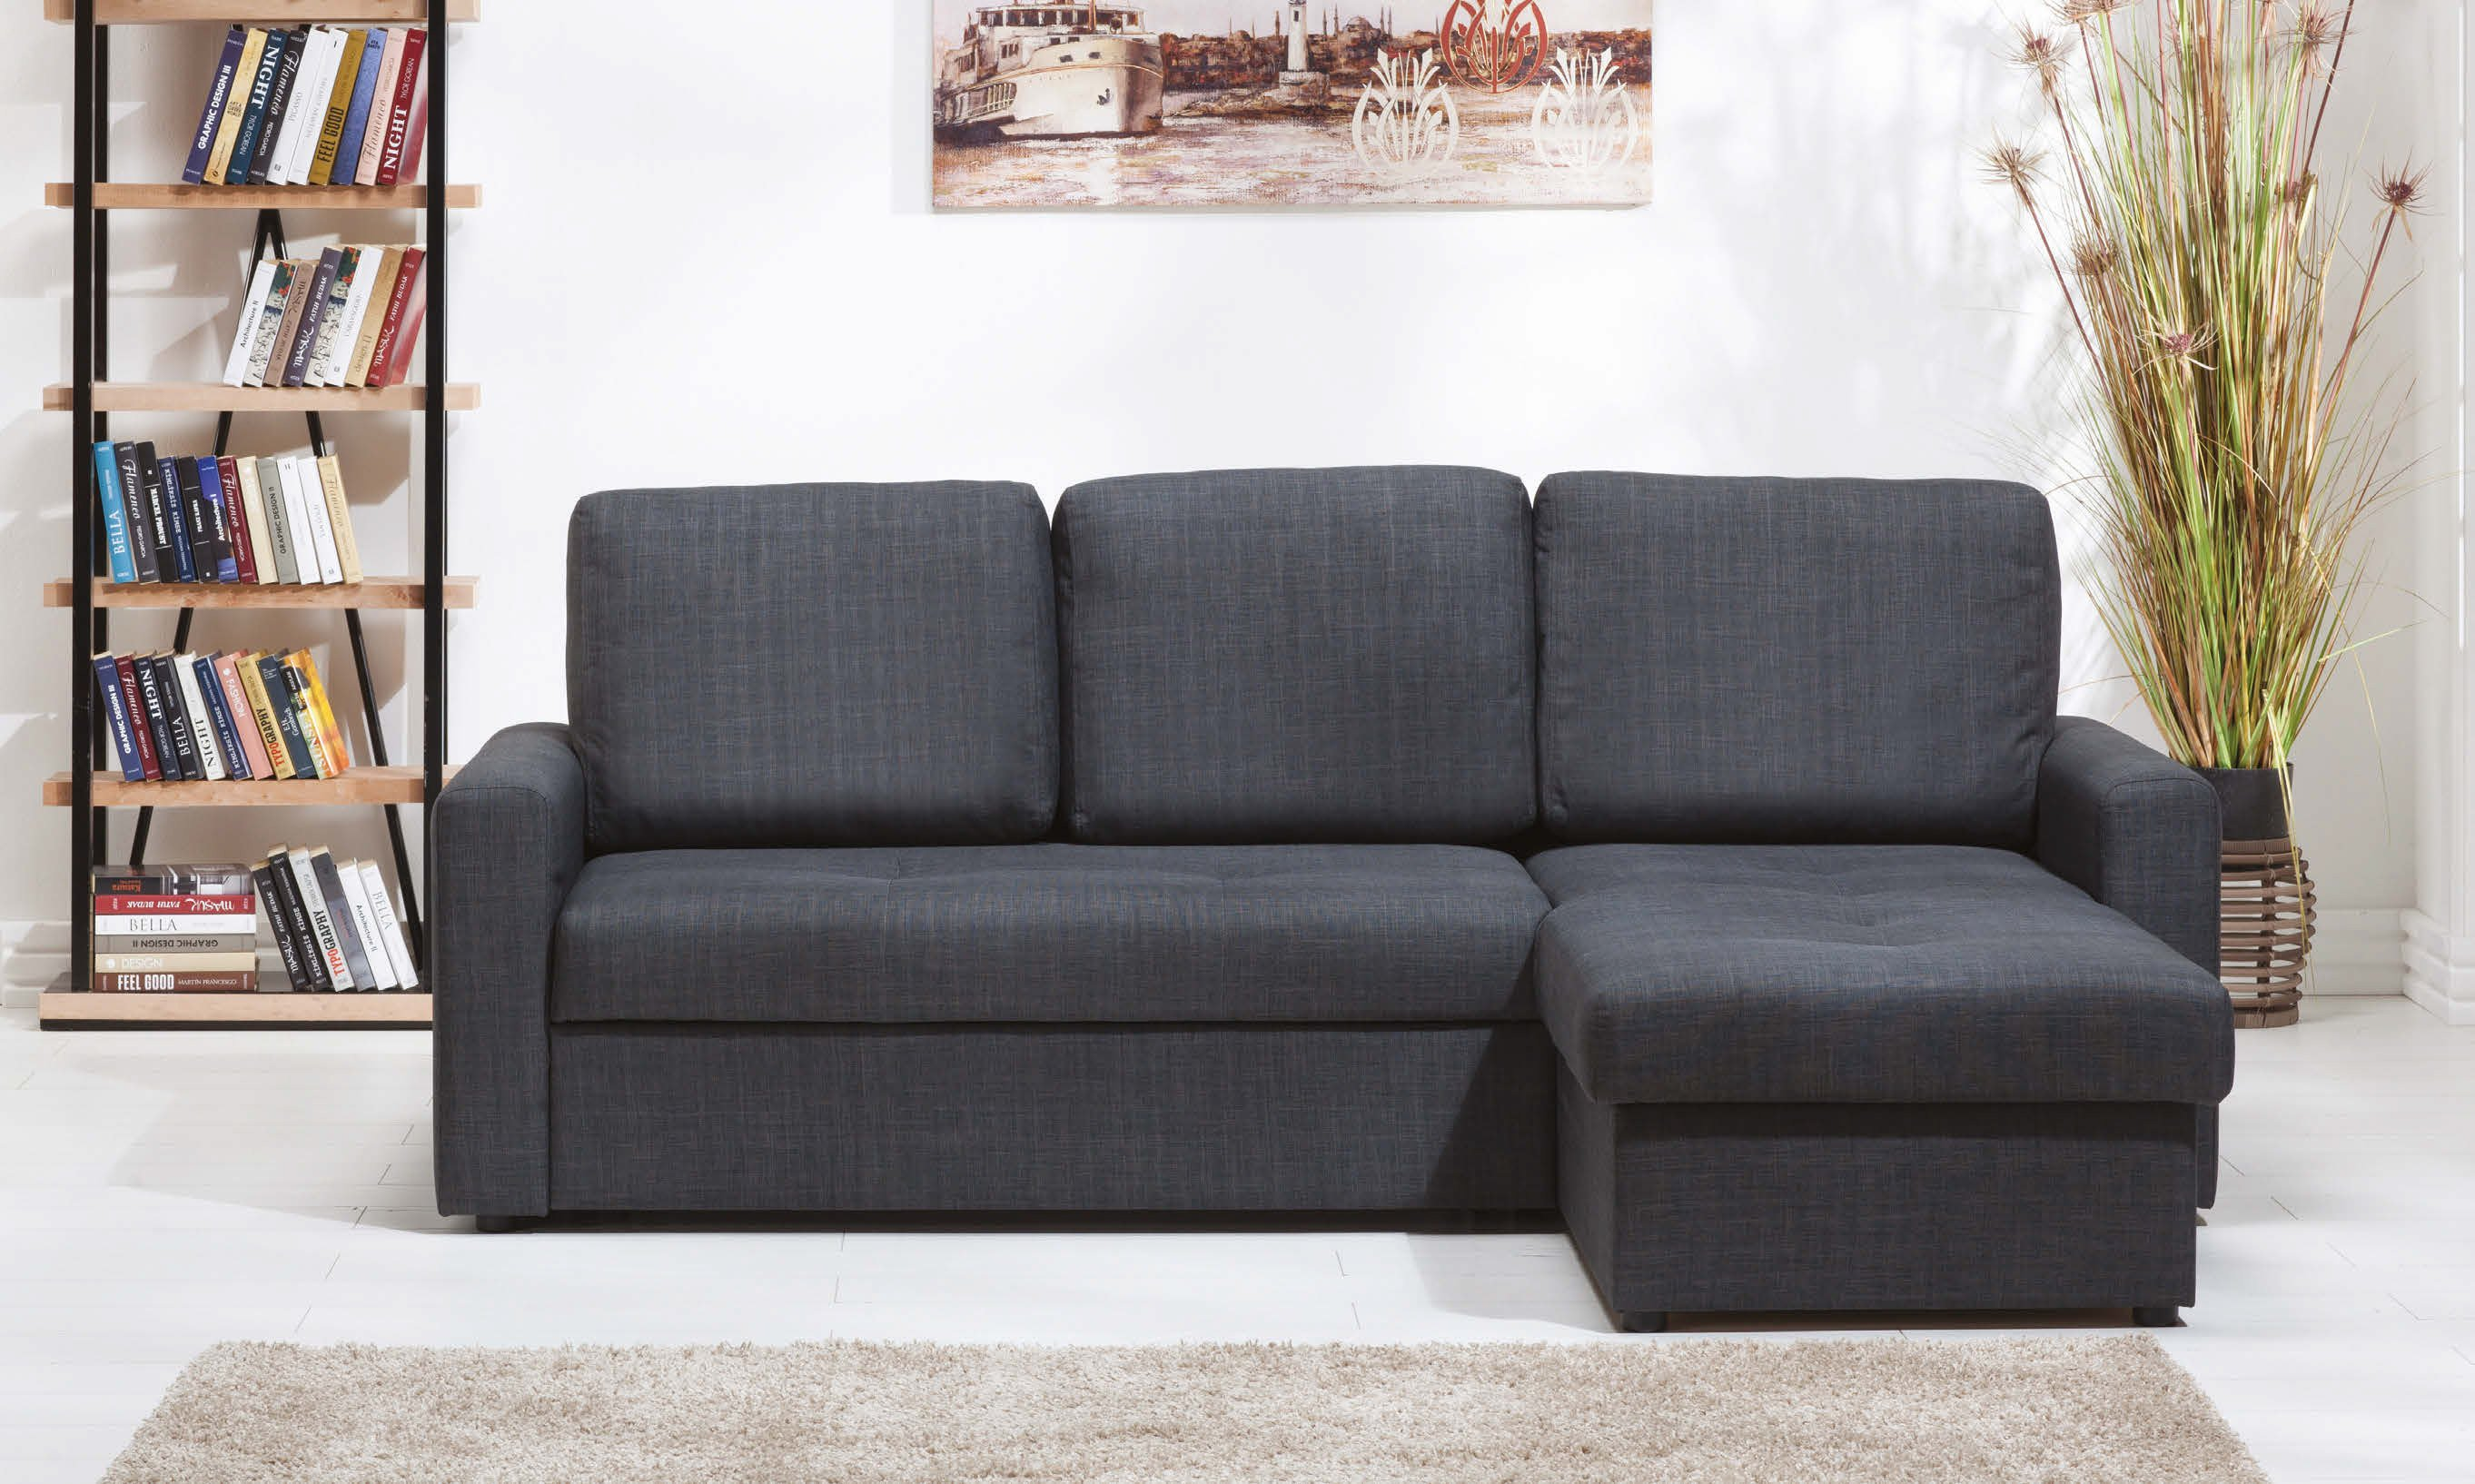 Fethiye Dark Grey Fabric Sectional Sofa by Sunset